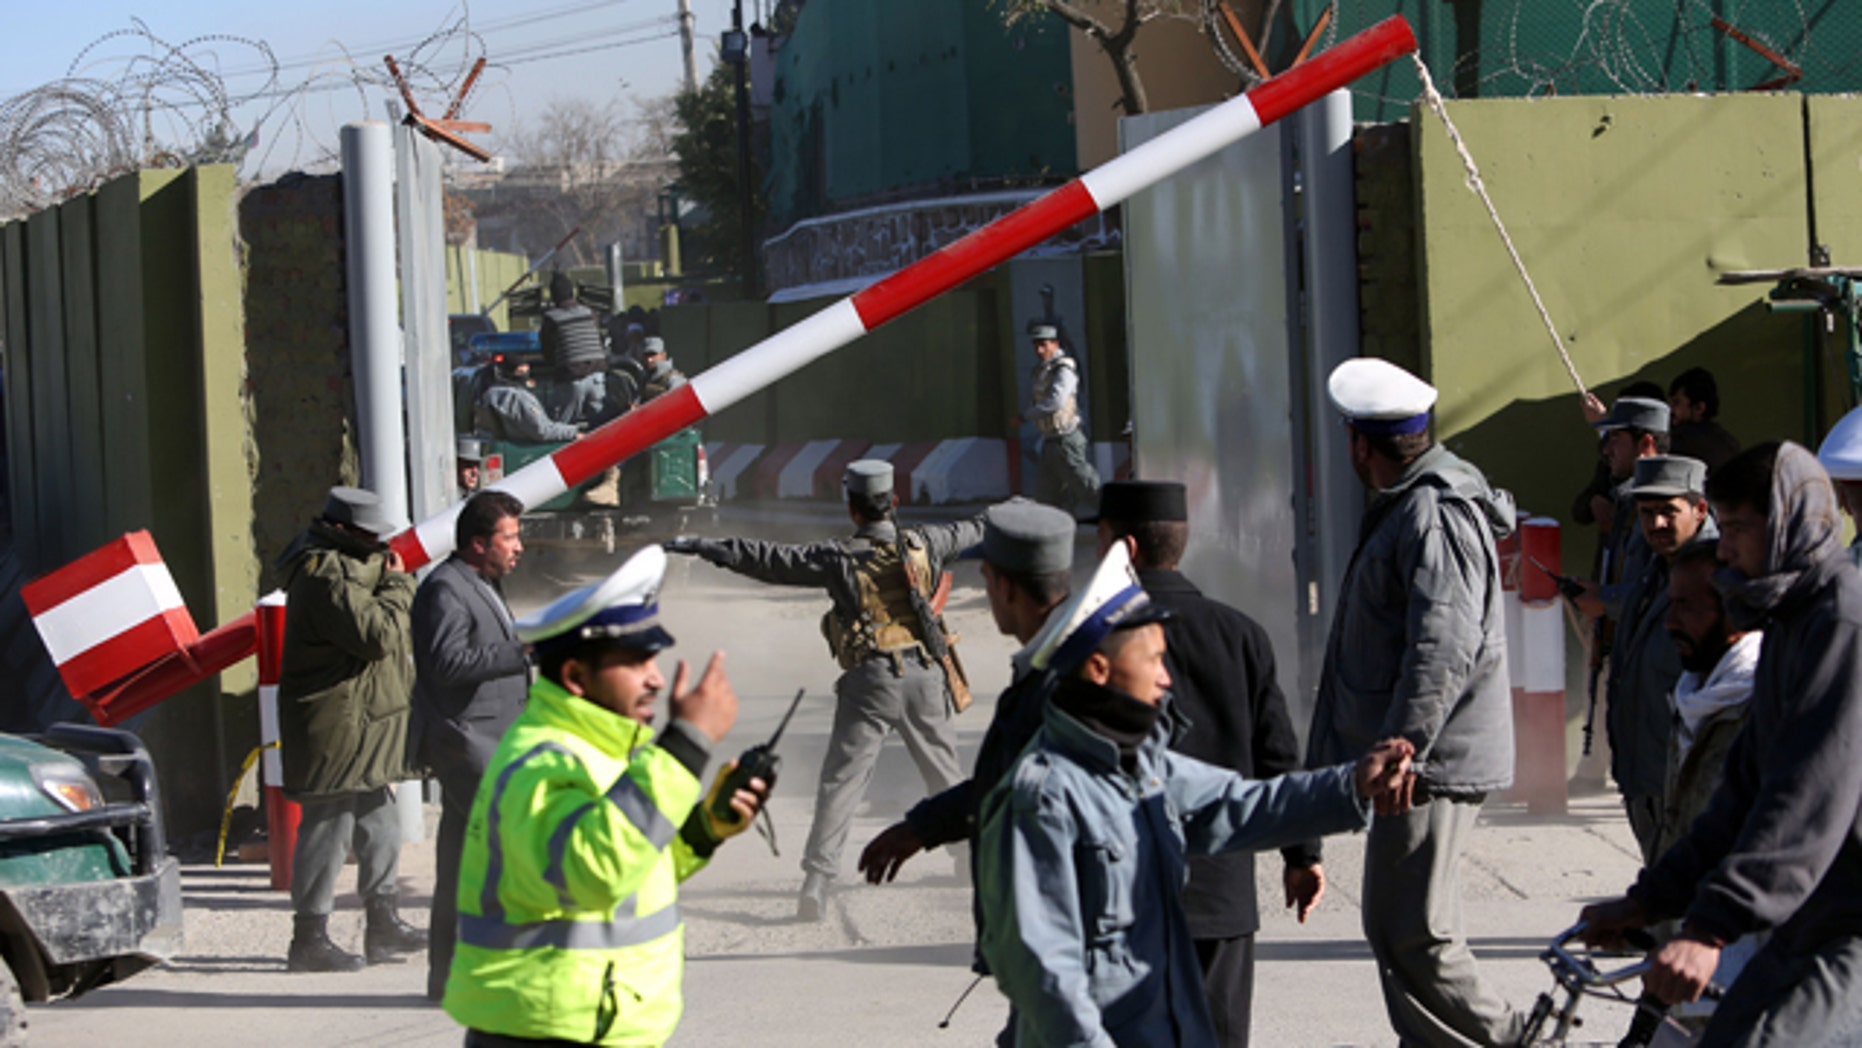 Nov. 9, 2014: Afghan Police inspect the site of a suicide attack in Kabul. A bomb exploded on Sunday morning at the police headquarters, killing at least one officer and wounding another six, officials said. (AP Photo/Rahmat Gul)